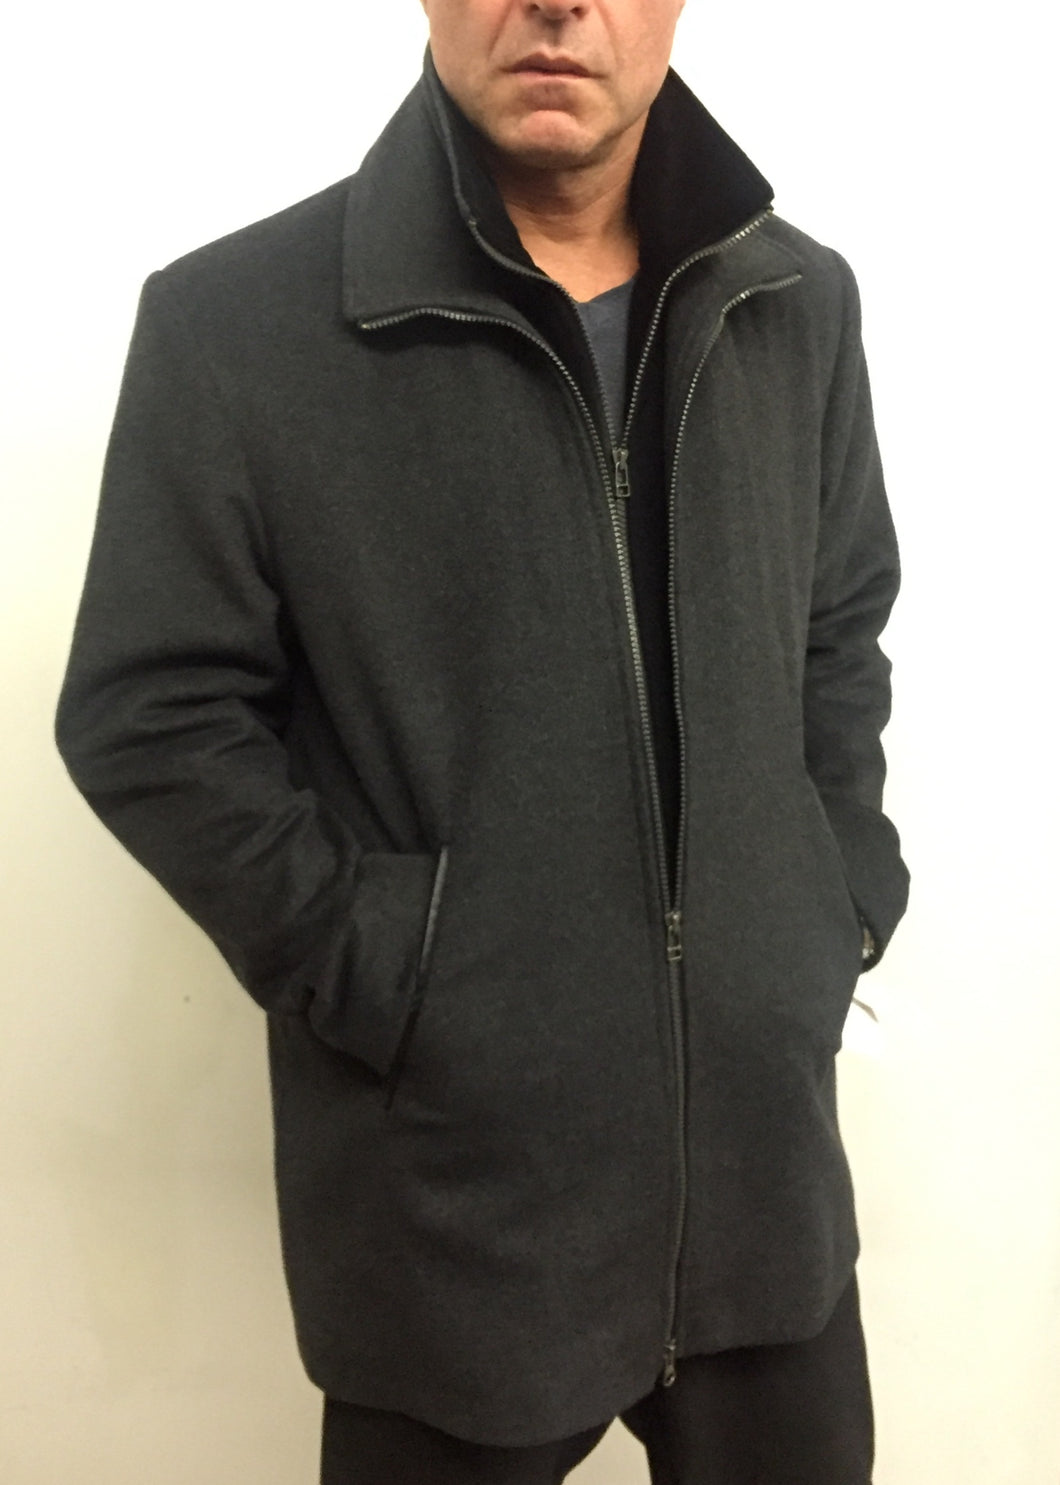 Jonathan Double Zip Jacket - Cashmere & Wool with Velvet Trim